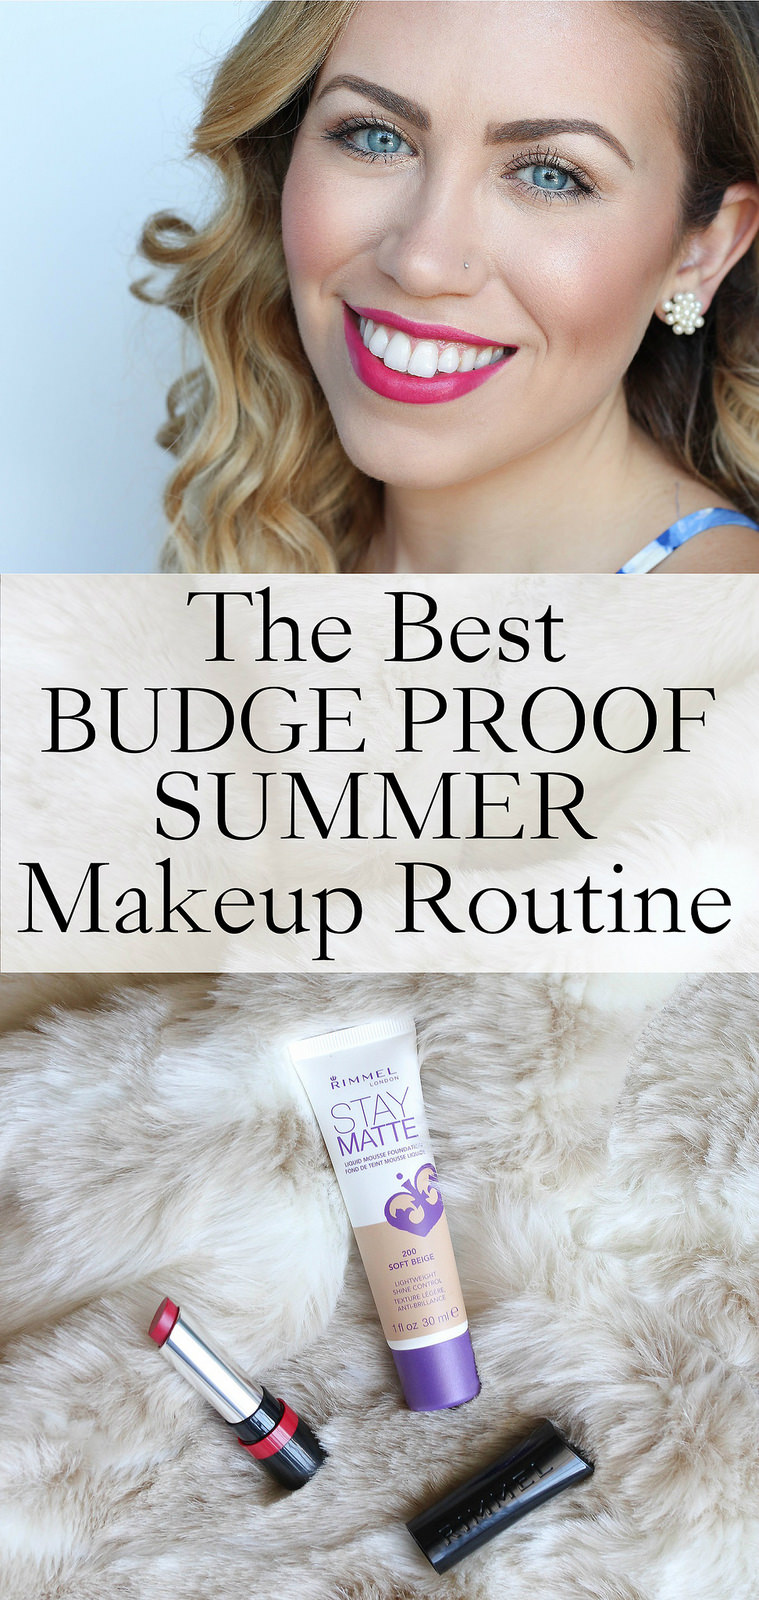 The Best Budge Proof Summer Makeup Routine